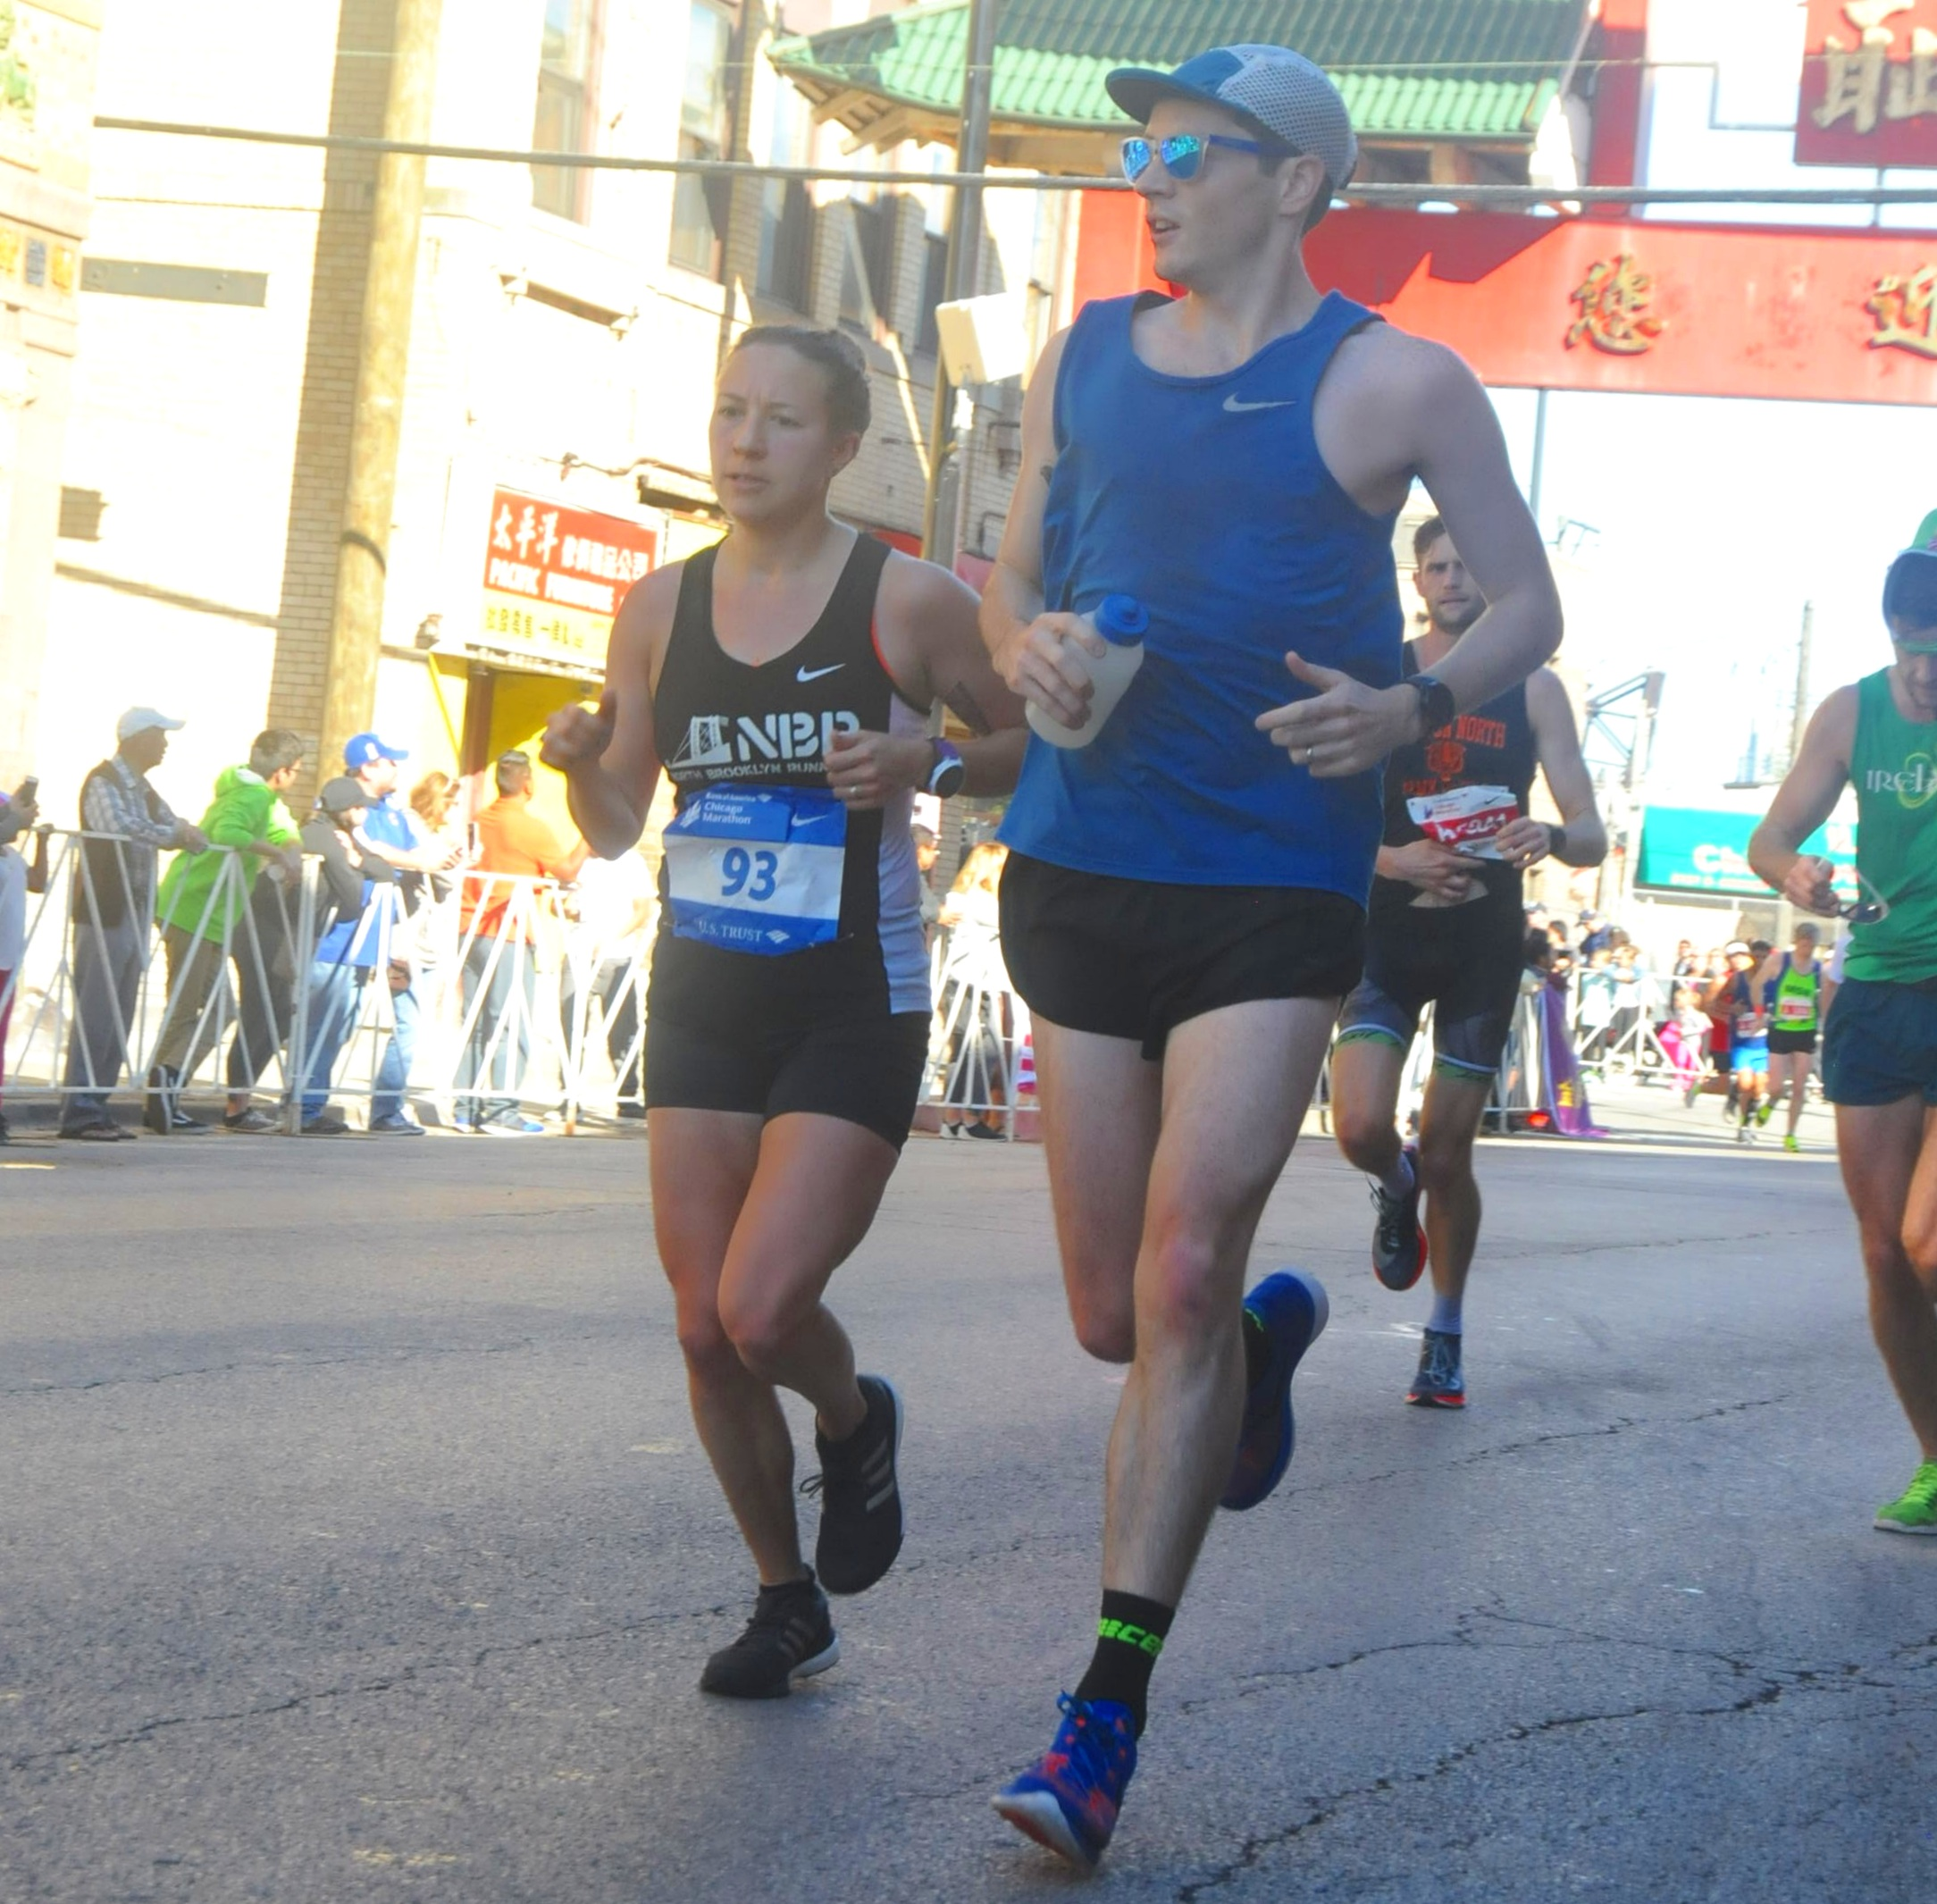 Marie Barnett and Xander Woolverton at the 2017 Chicago Marathon